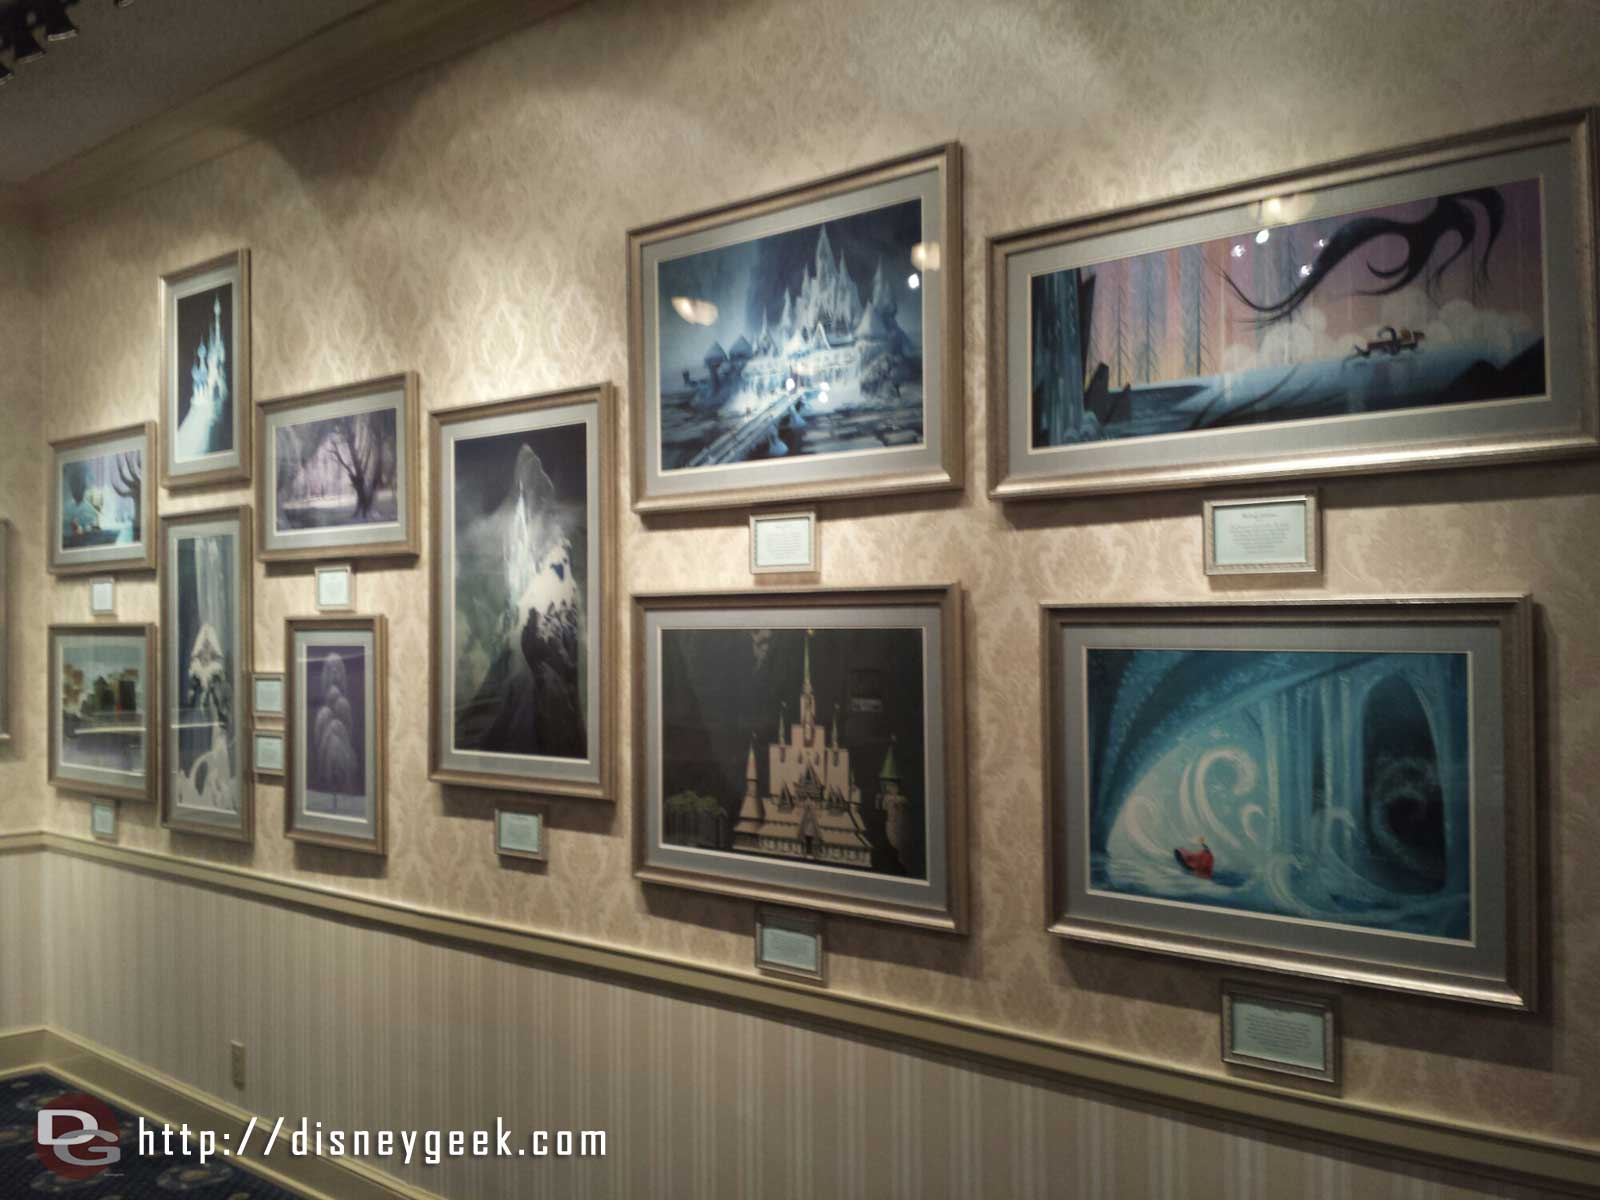 A quick preview of Snow Queens Art of Ice in the Disney Gallery, full pictures in the update Saturday